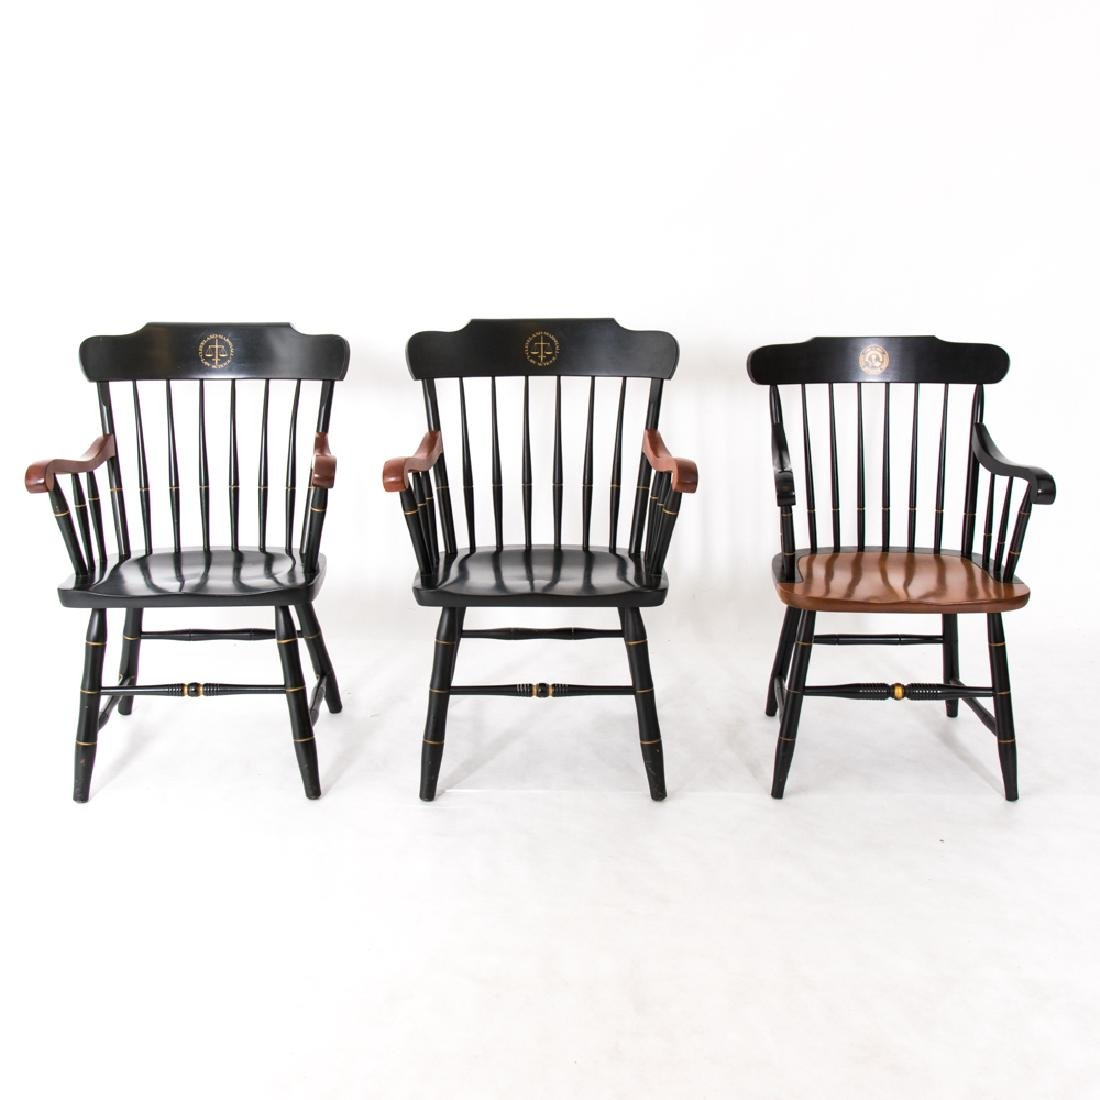 A Group of Three Hitchcock Style Painted Hardwood